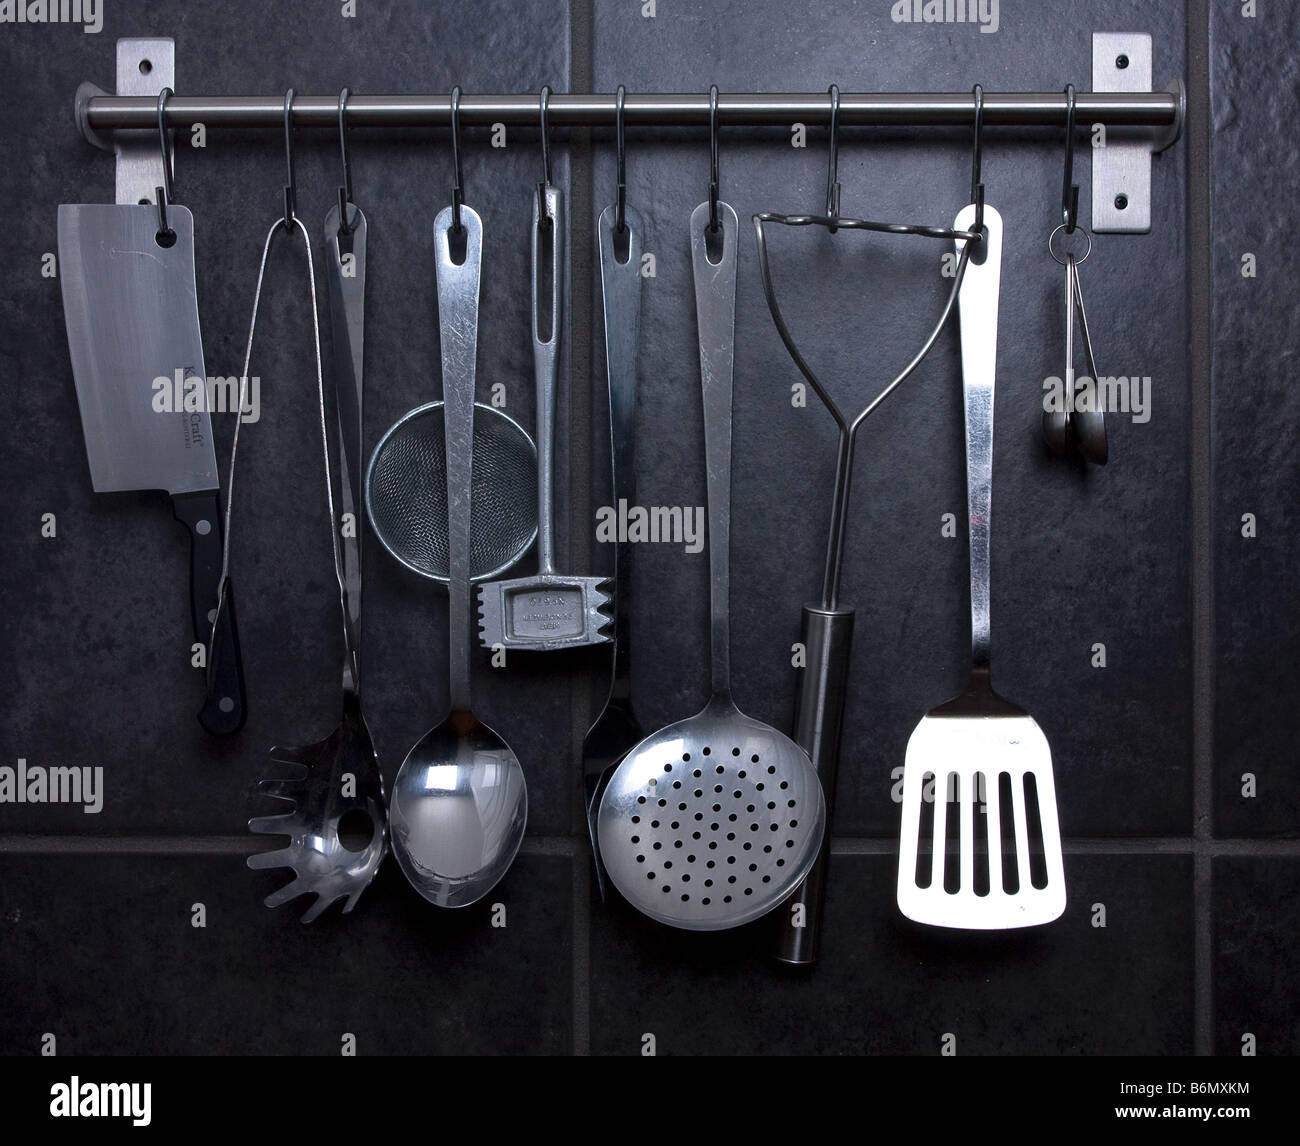 Beautiful Various Stainless Steel Kitchen Utensils Hanging From Ikea Rail Against  Black Slate Effect Tiles